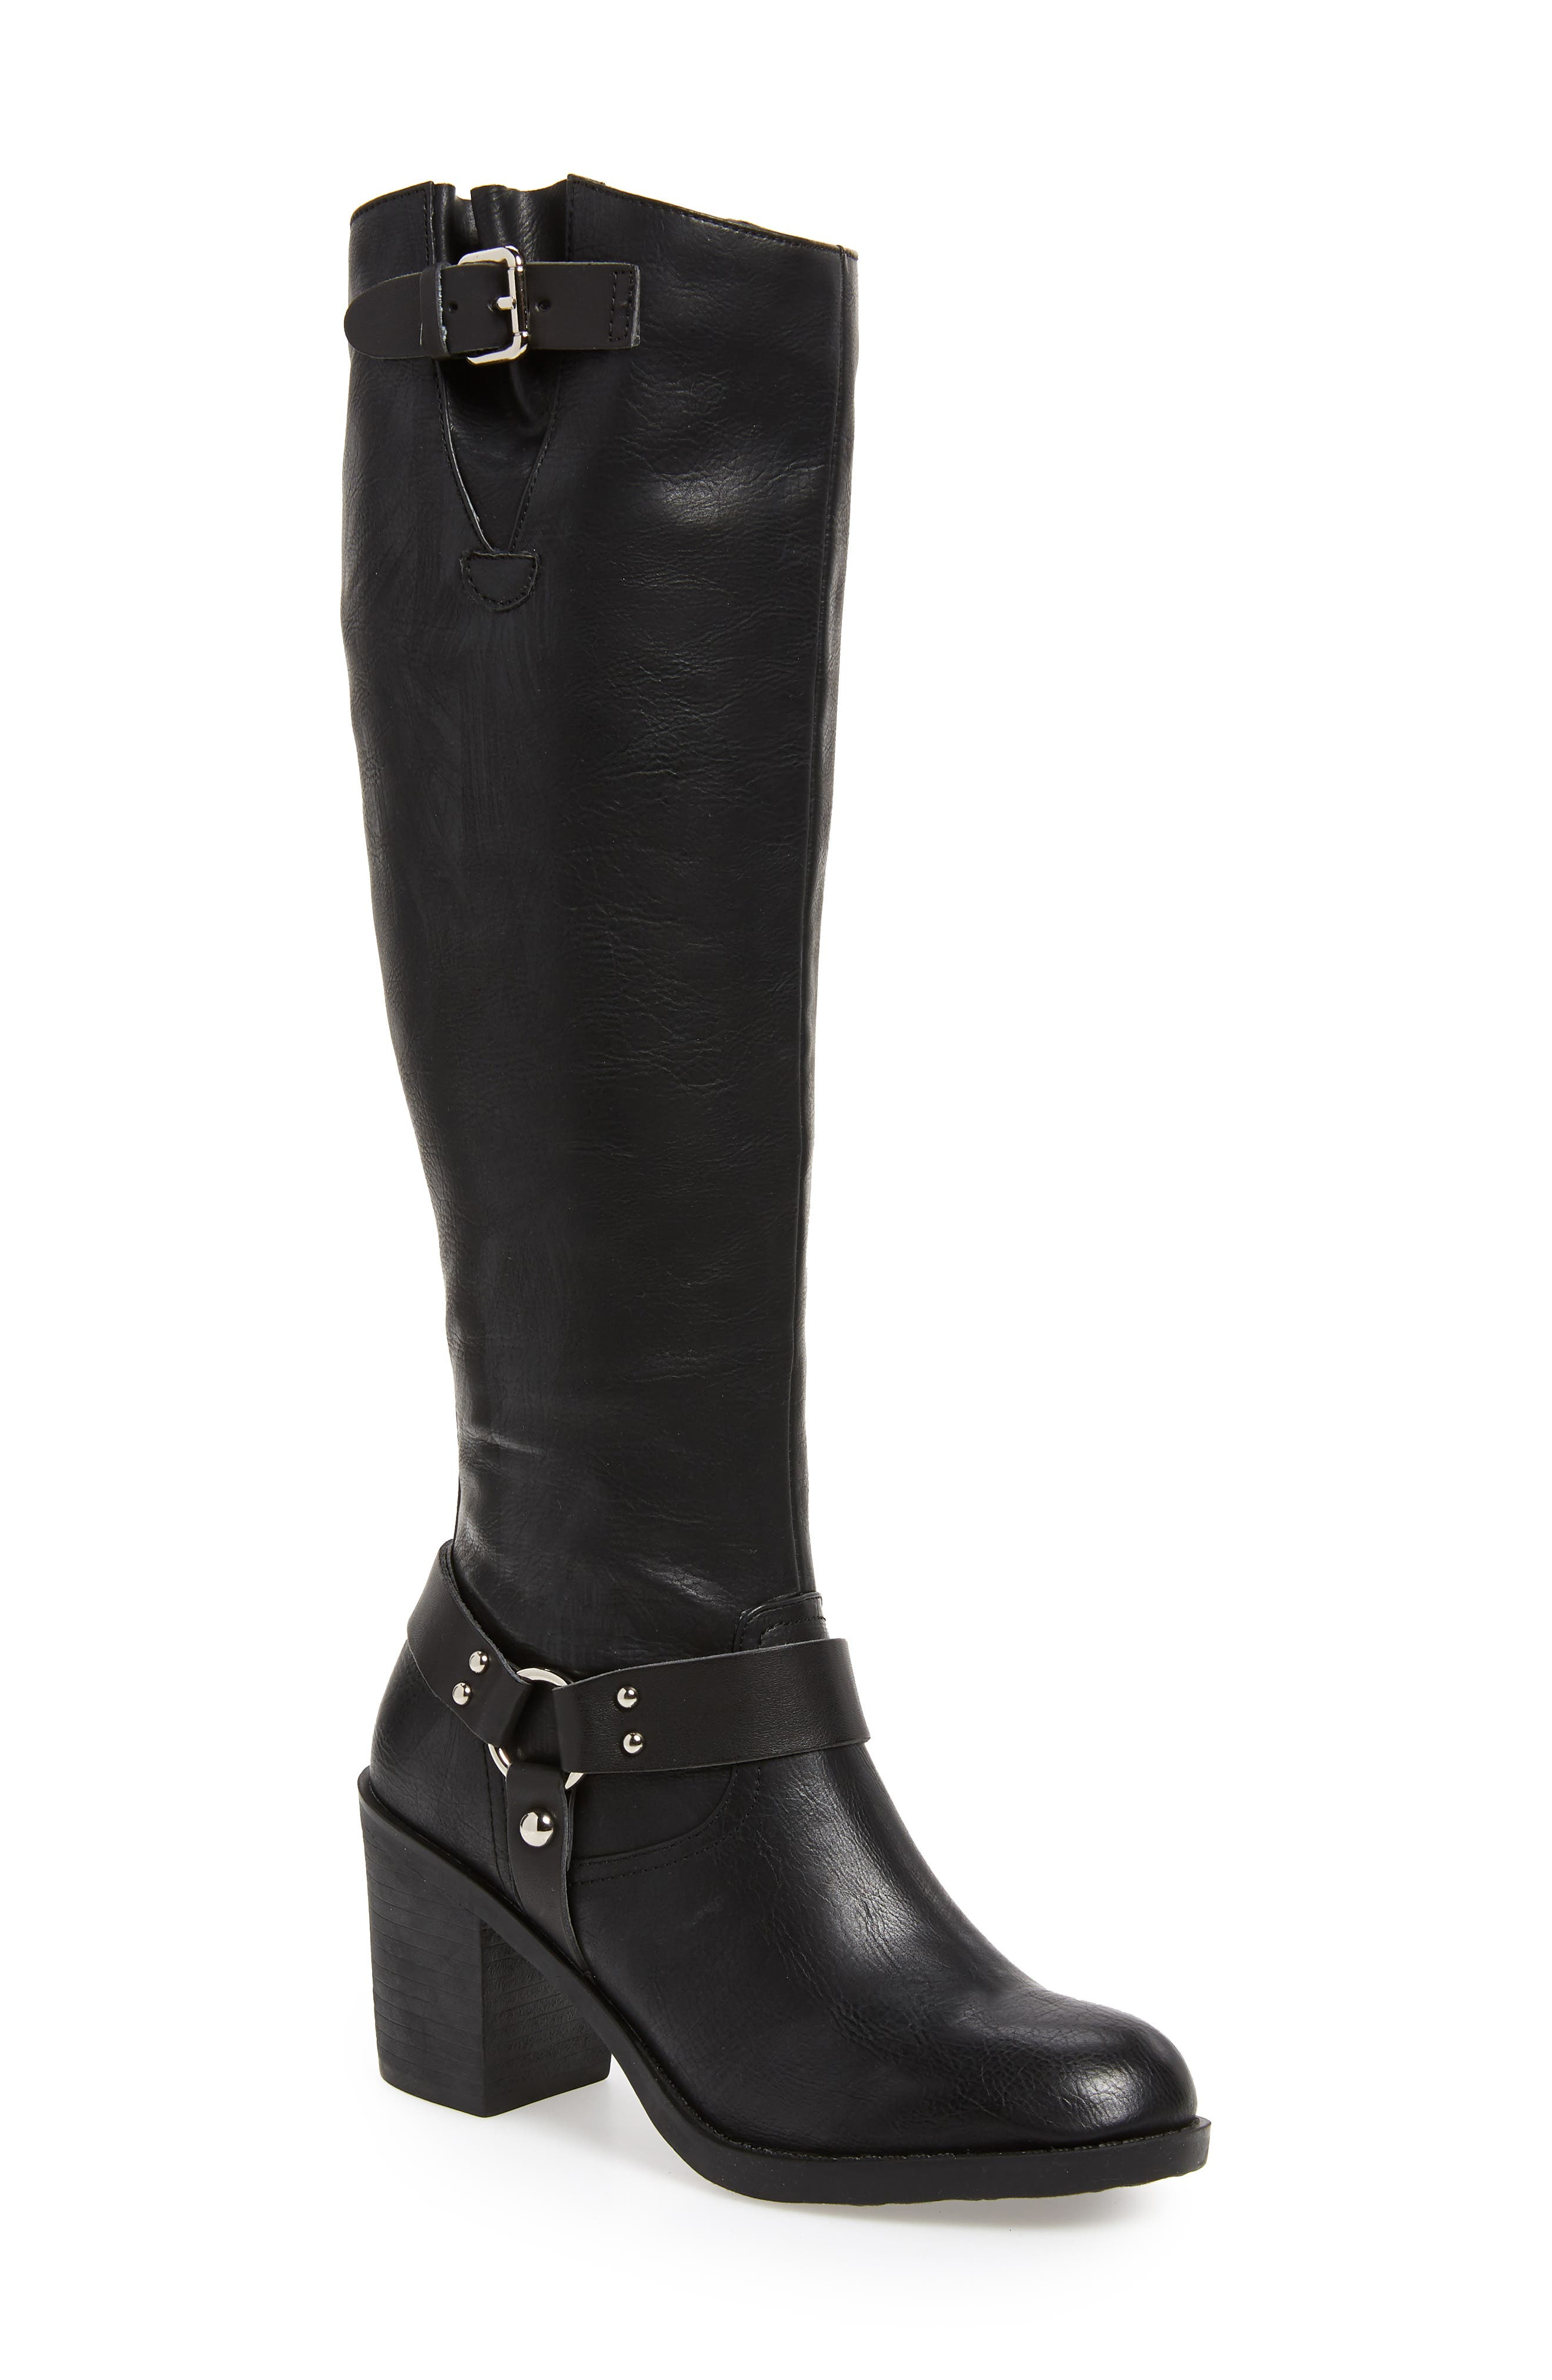 SBICCA, Dimarco Knee High Boot, Main thumbnail 1, color, BLACK FAUX LEATHER